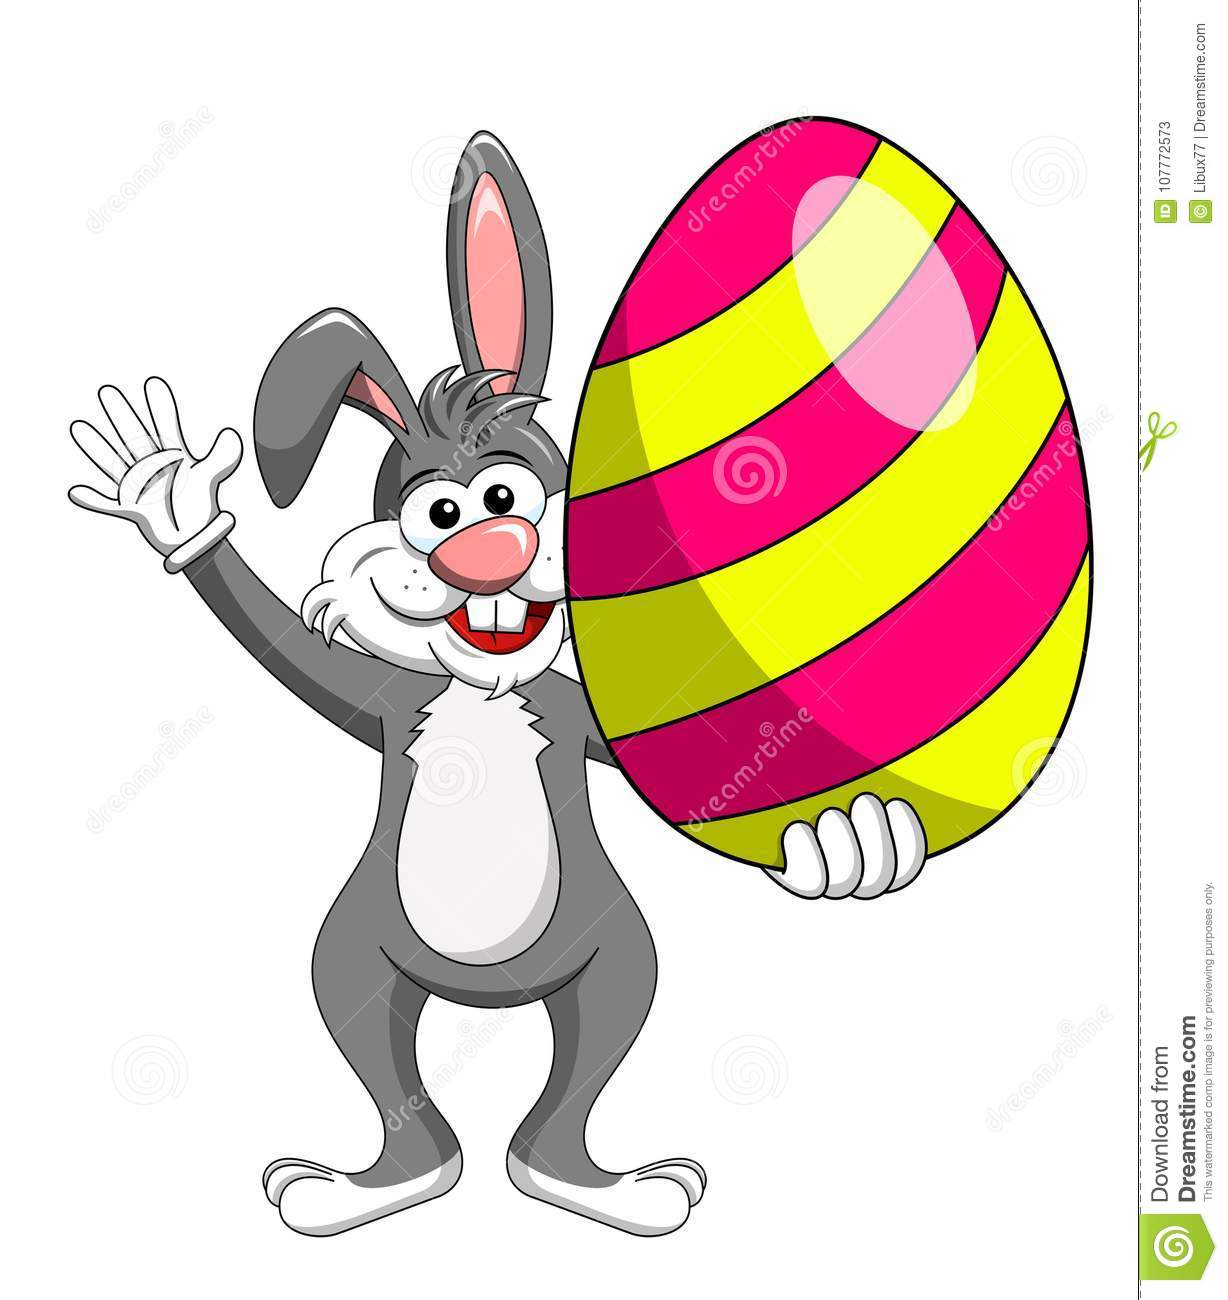 Rabbit or bunny holding colorful big egg isolated